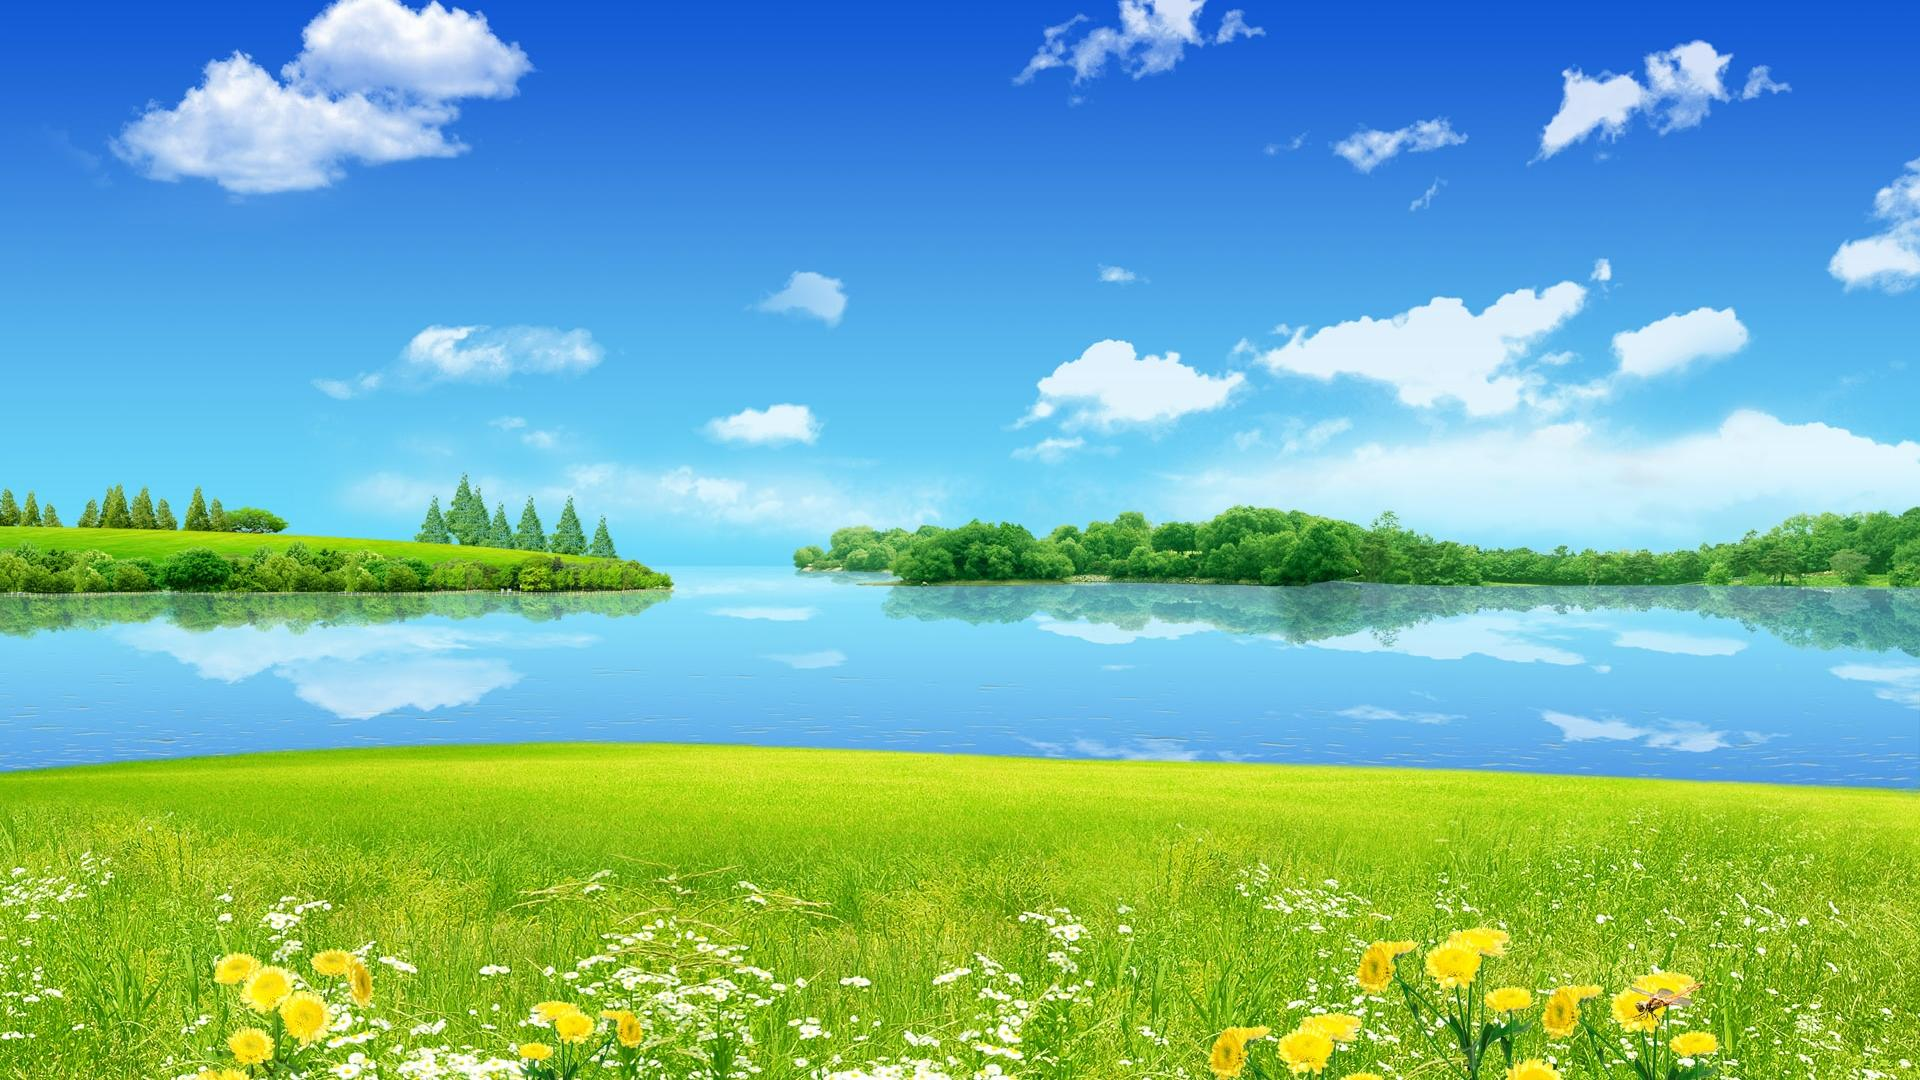 summer desktop wallpaper background hd | pixelstalk